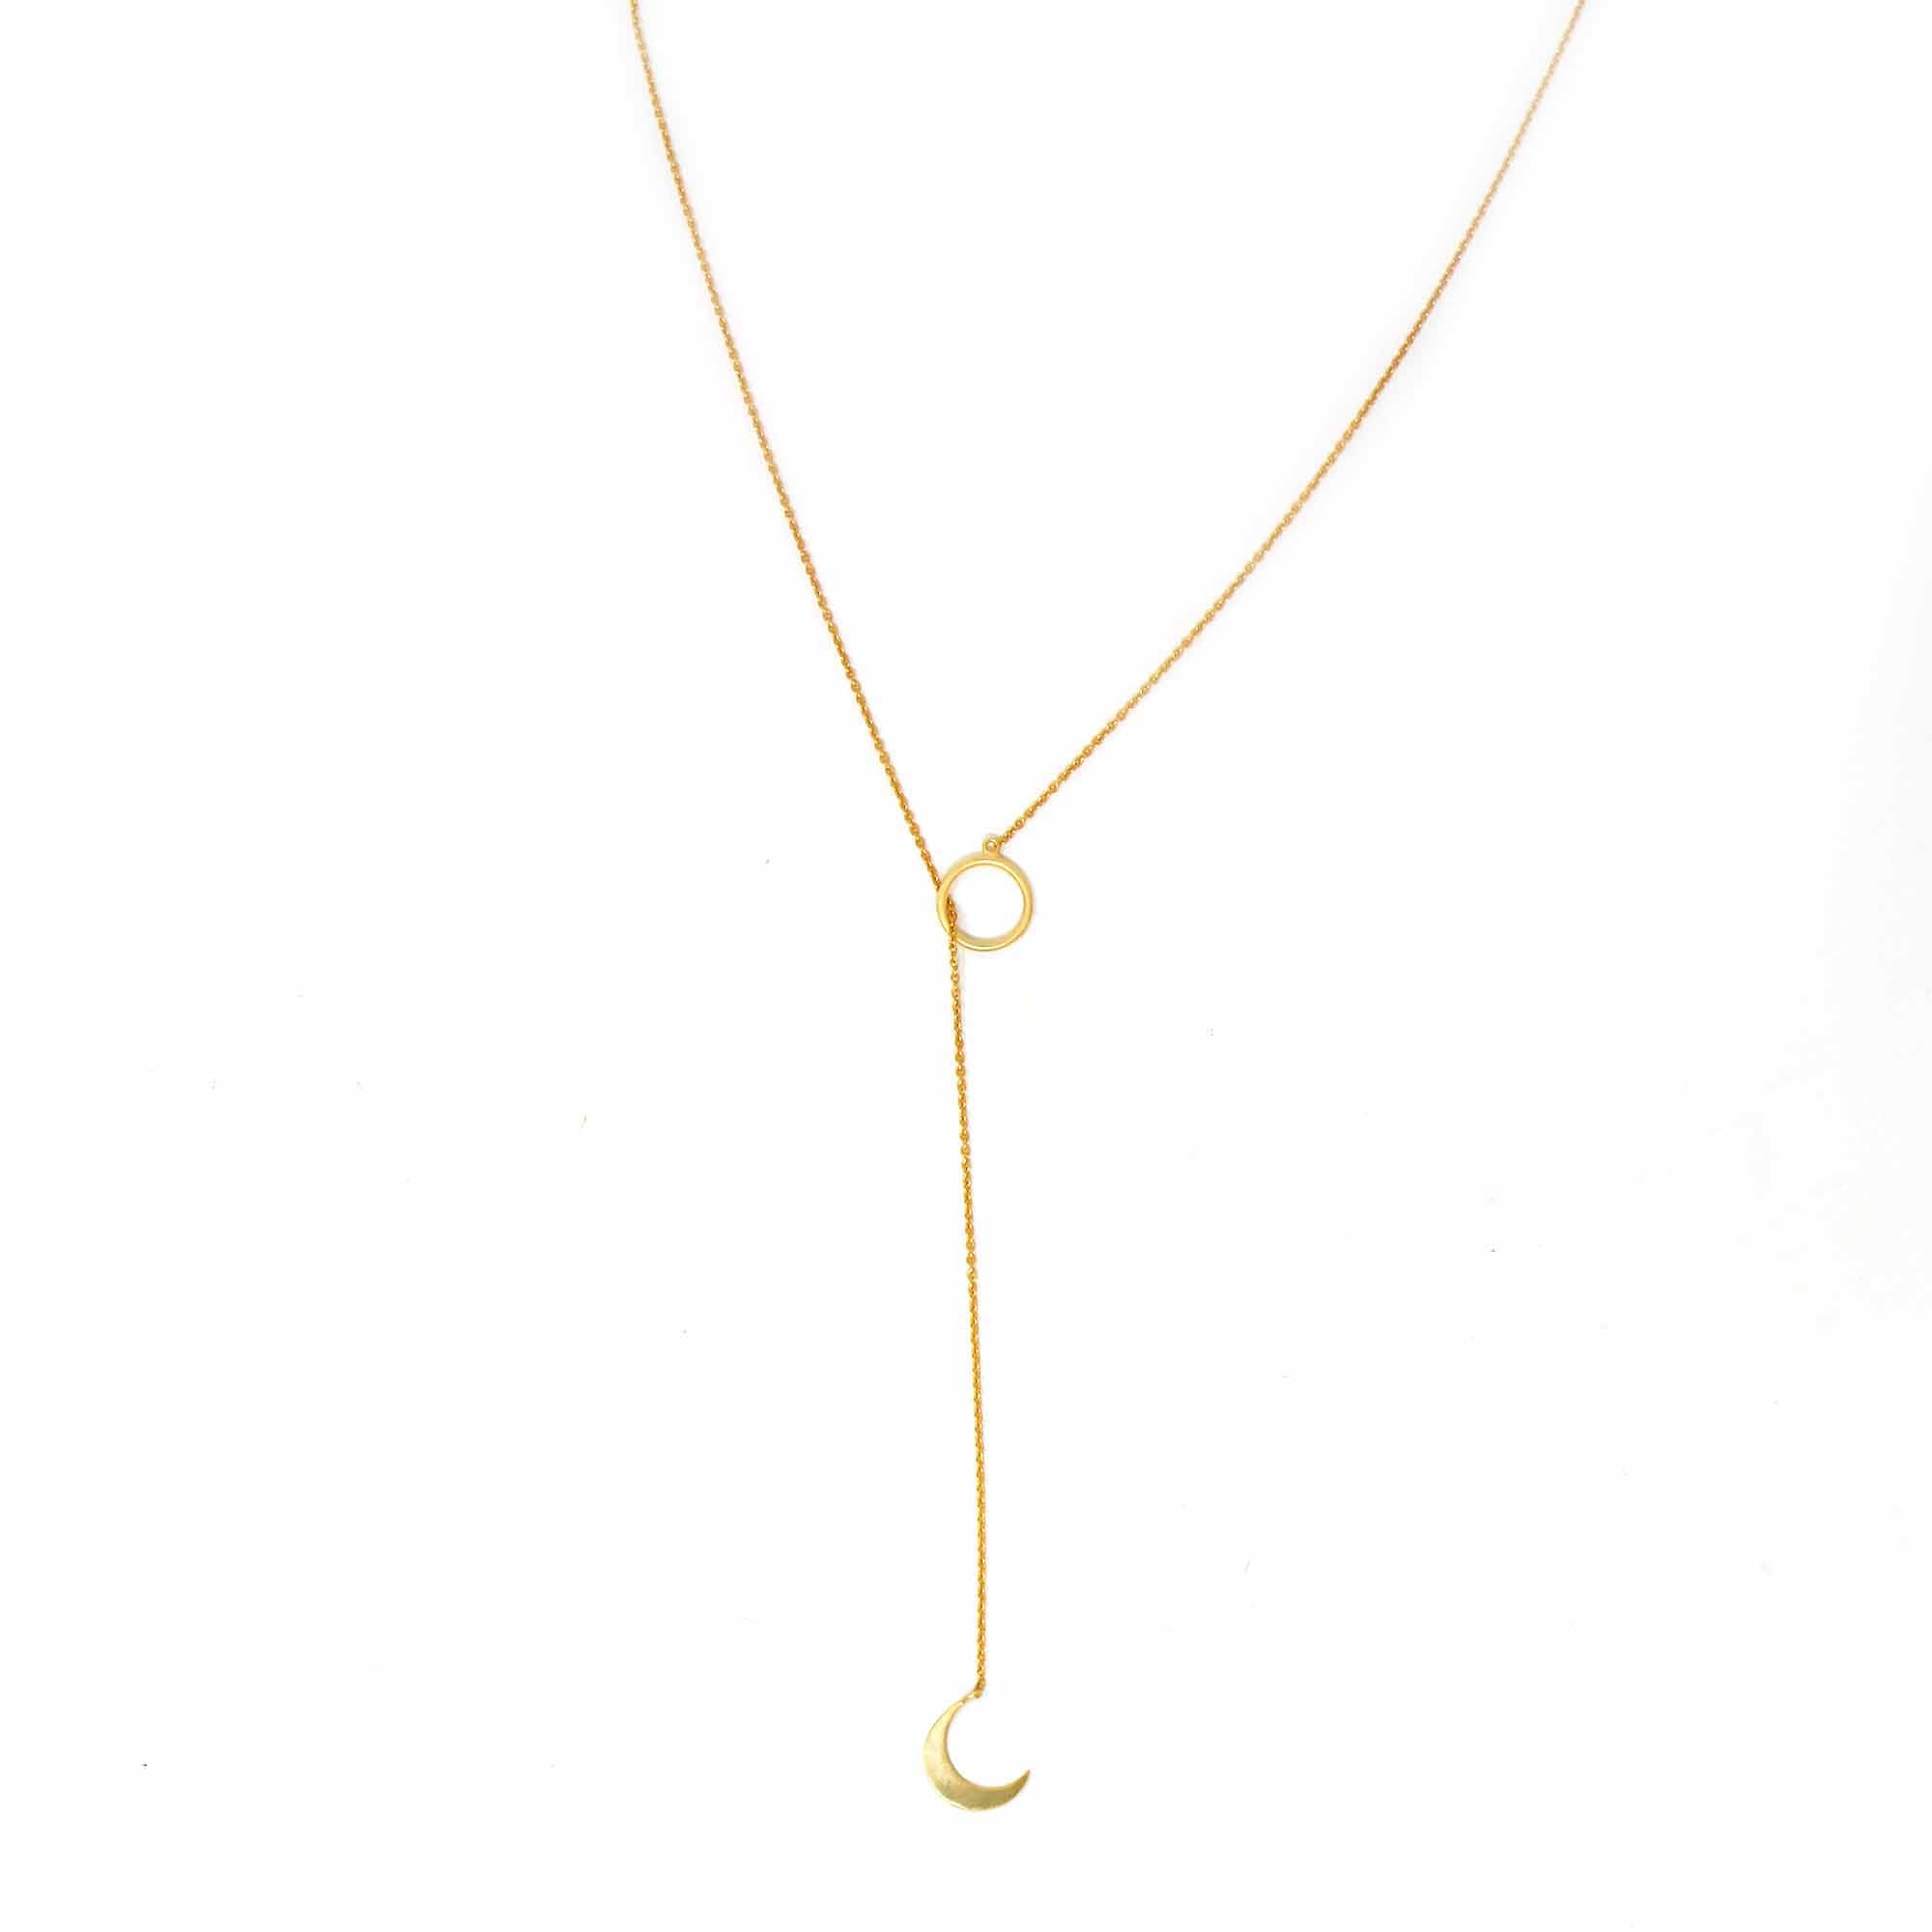 Crescent Moon Goldtone Pendant Necklace - Pack of 3